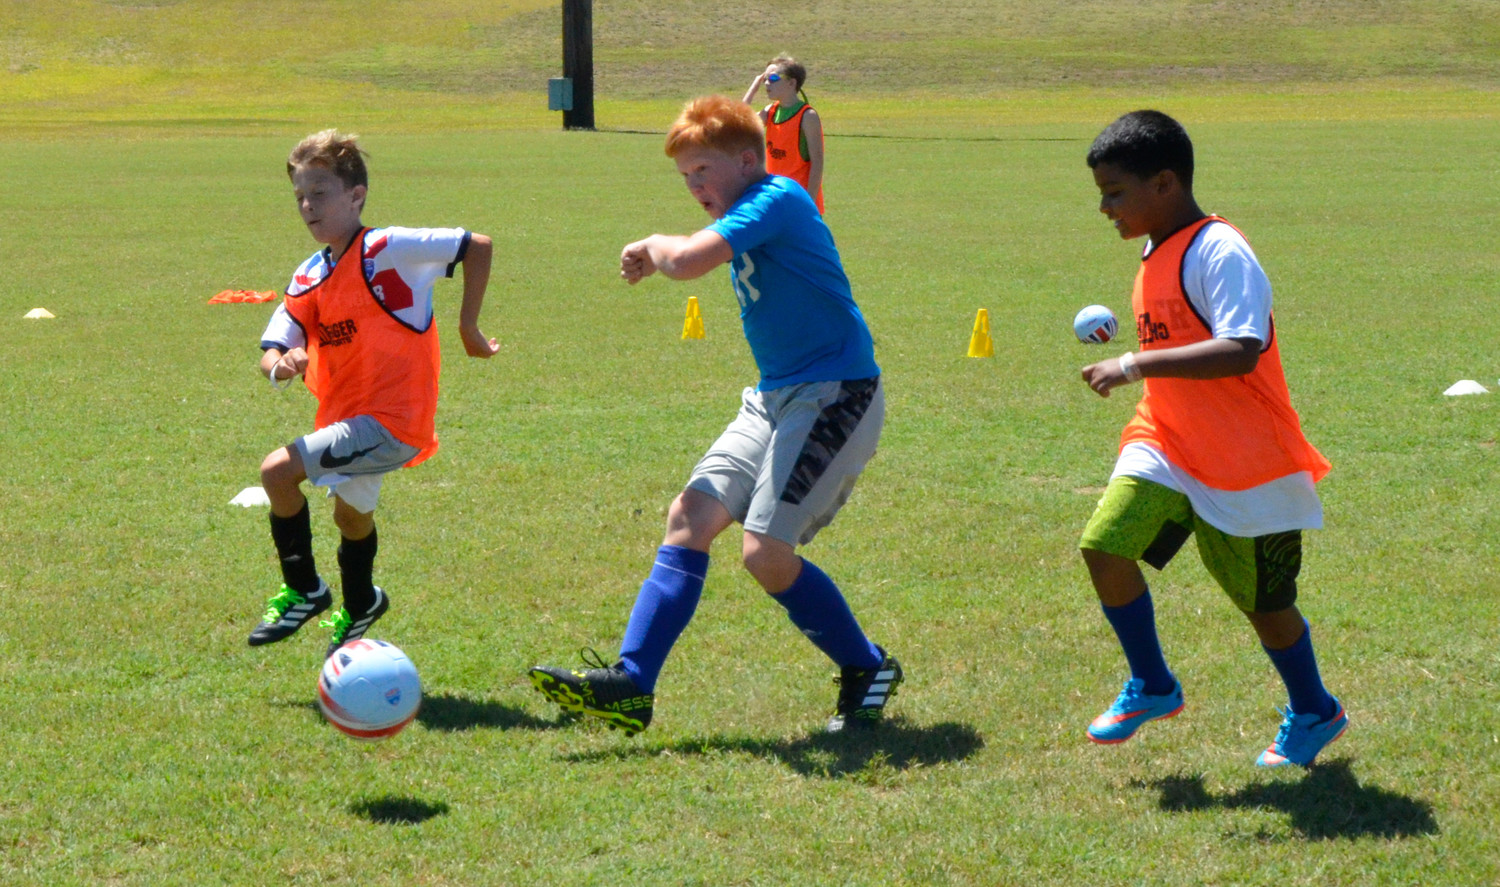 Walker Holmes blasts a shot onto goal after breaking away from Thomas Honeycutt, left, and Elijah Moore, right. This shot on goal took place Monday duringa  3-on-3 game-simulation training arranged by Challenger Sports British Soccer Camp instructor James McIvor.